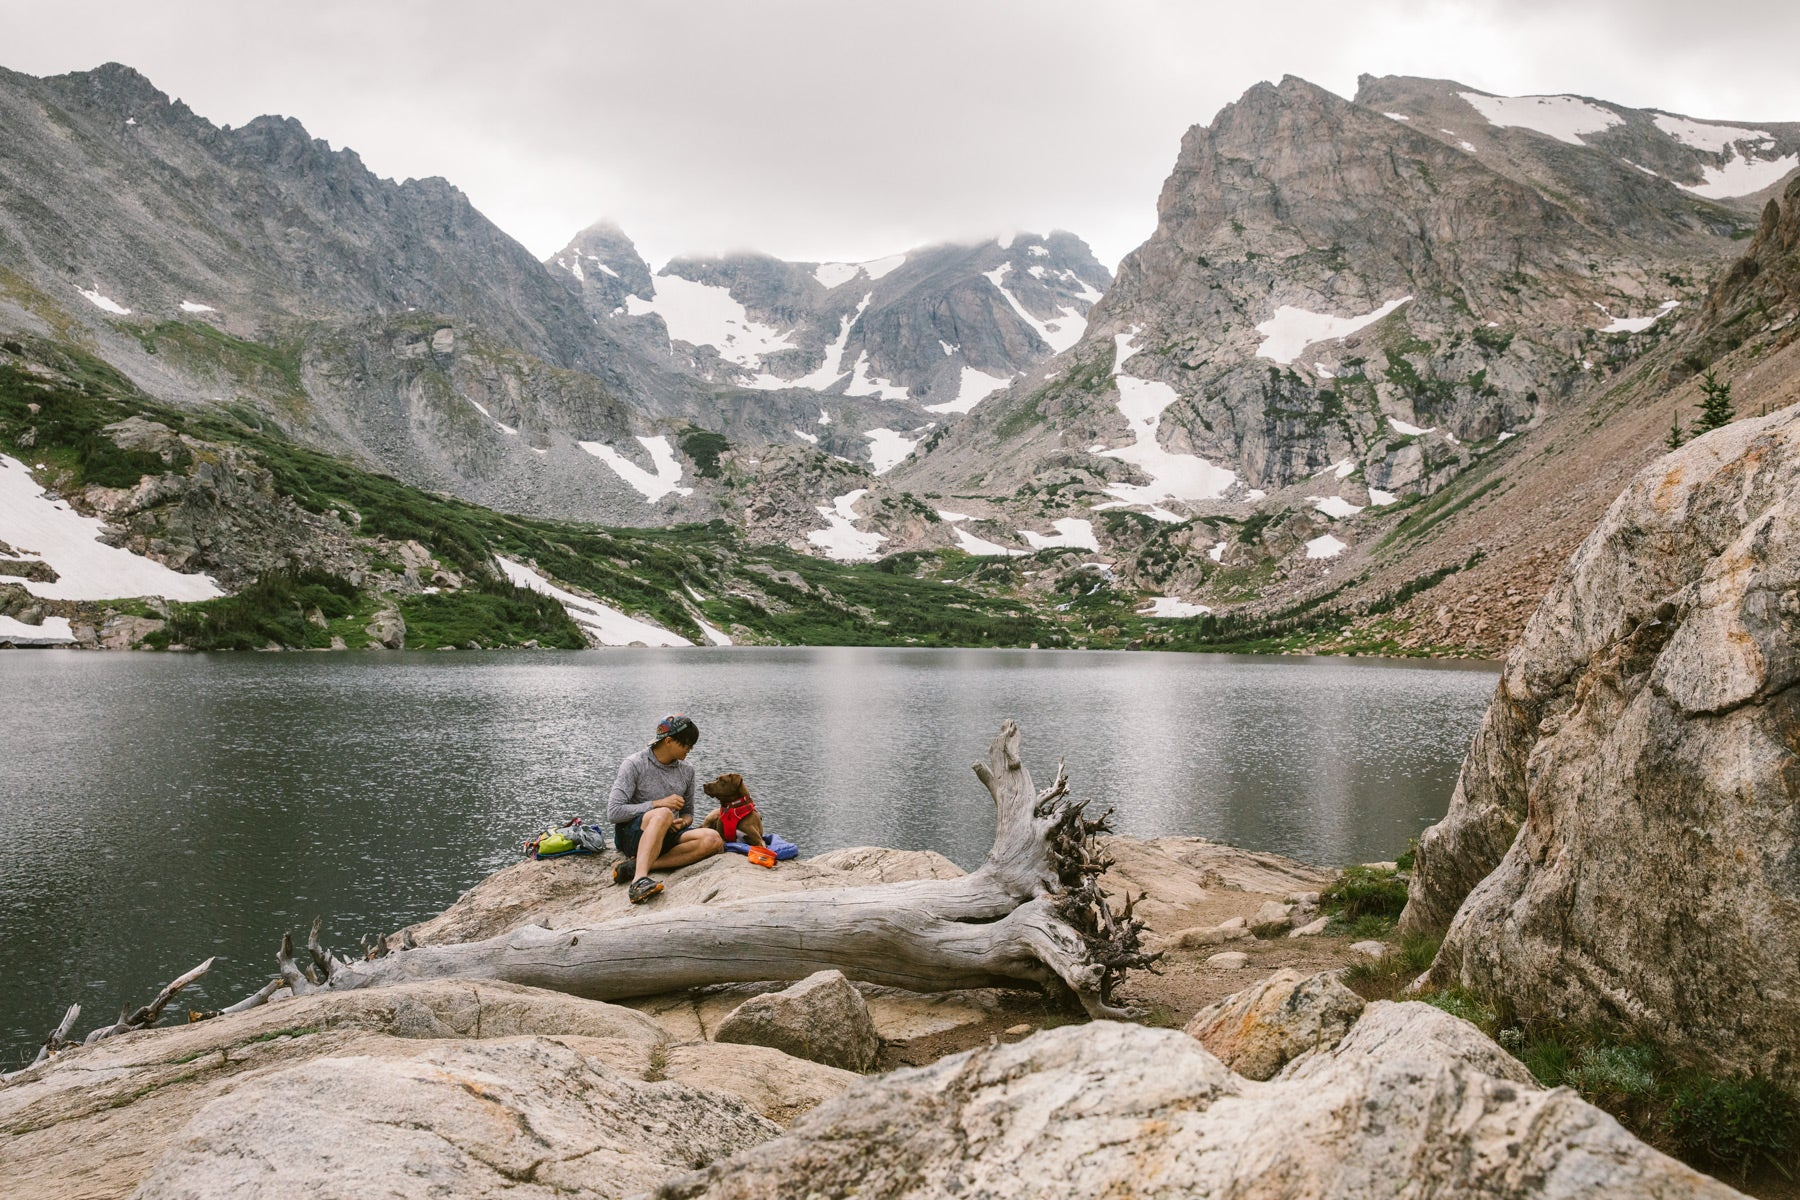 Nathan and Turkey sit on a rock by an alpine lake for a snack break.